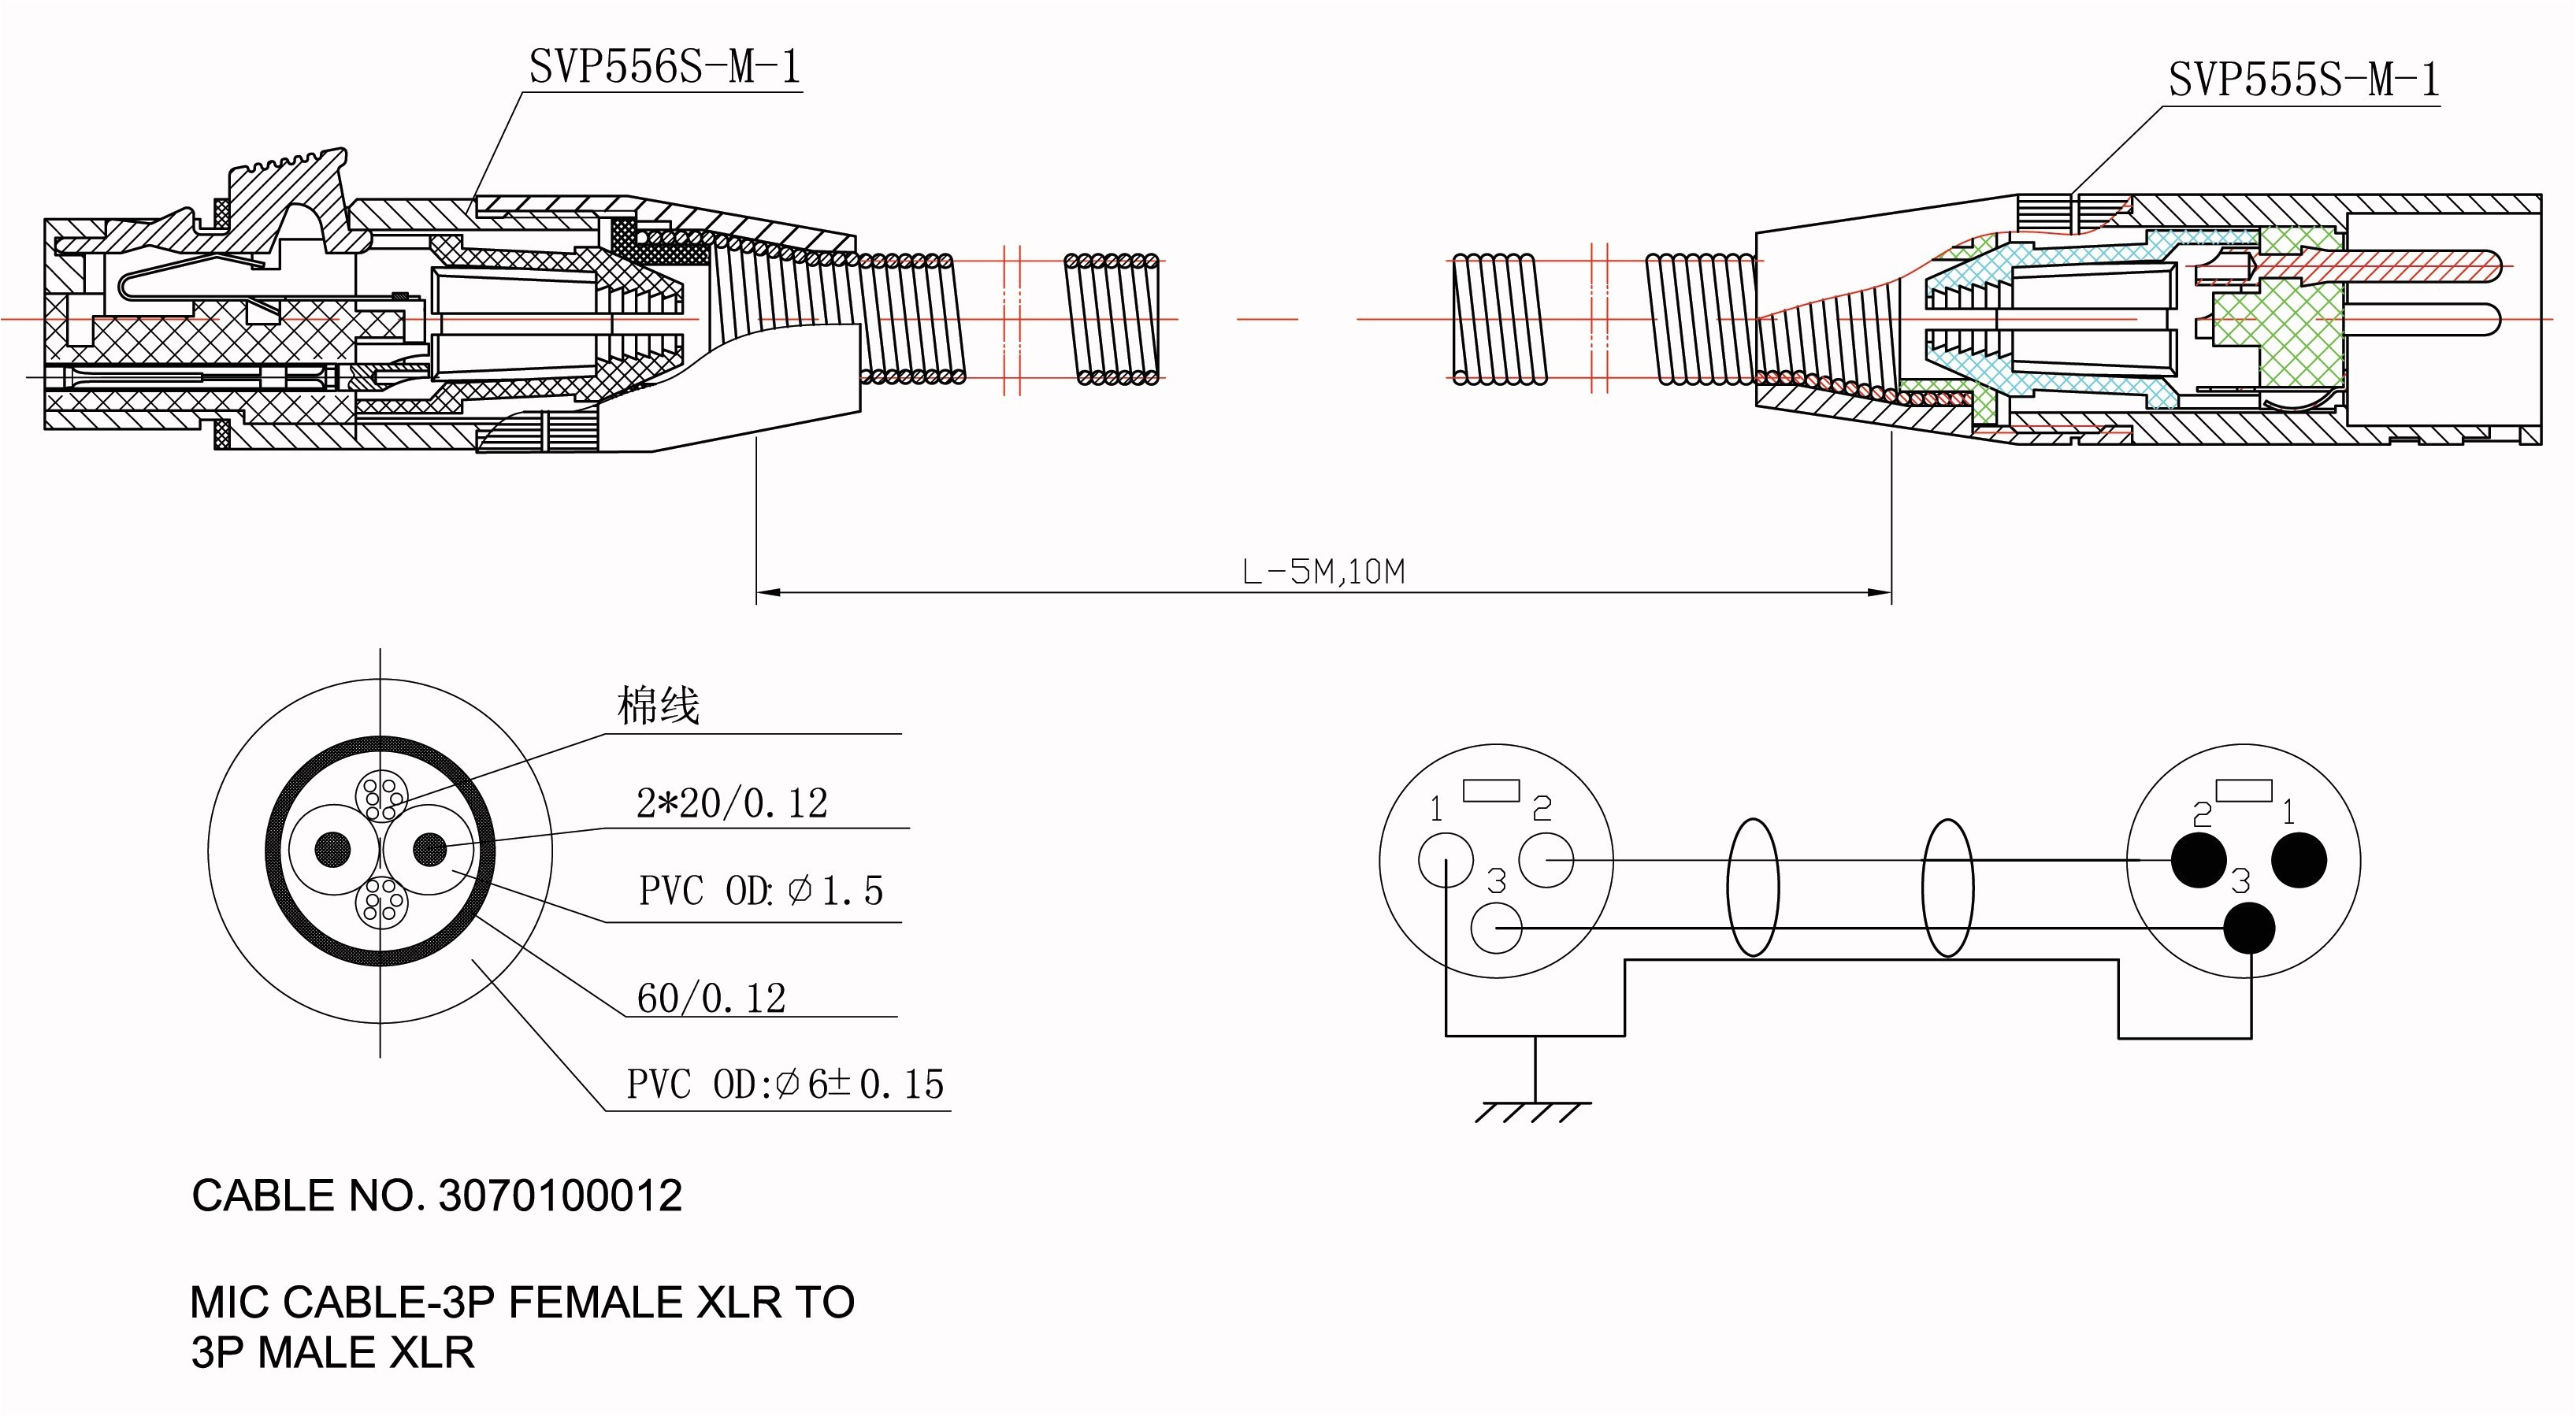 photo of wiring diagram for 220 volt baseboard heater heater wiring diagram 240v free downloads wiring diagram heaters save wiring diagram 220v baseboard heater wiring png